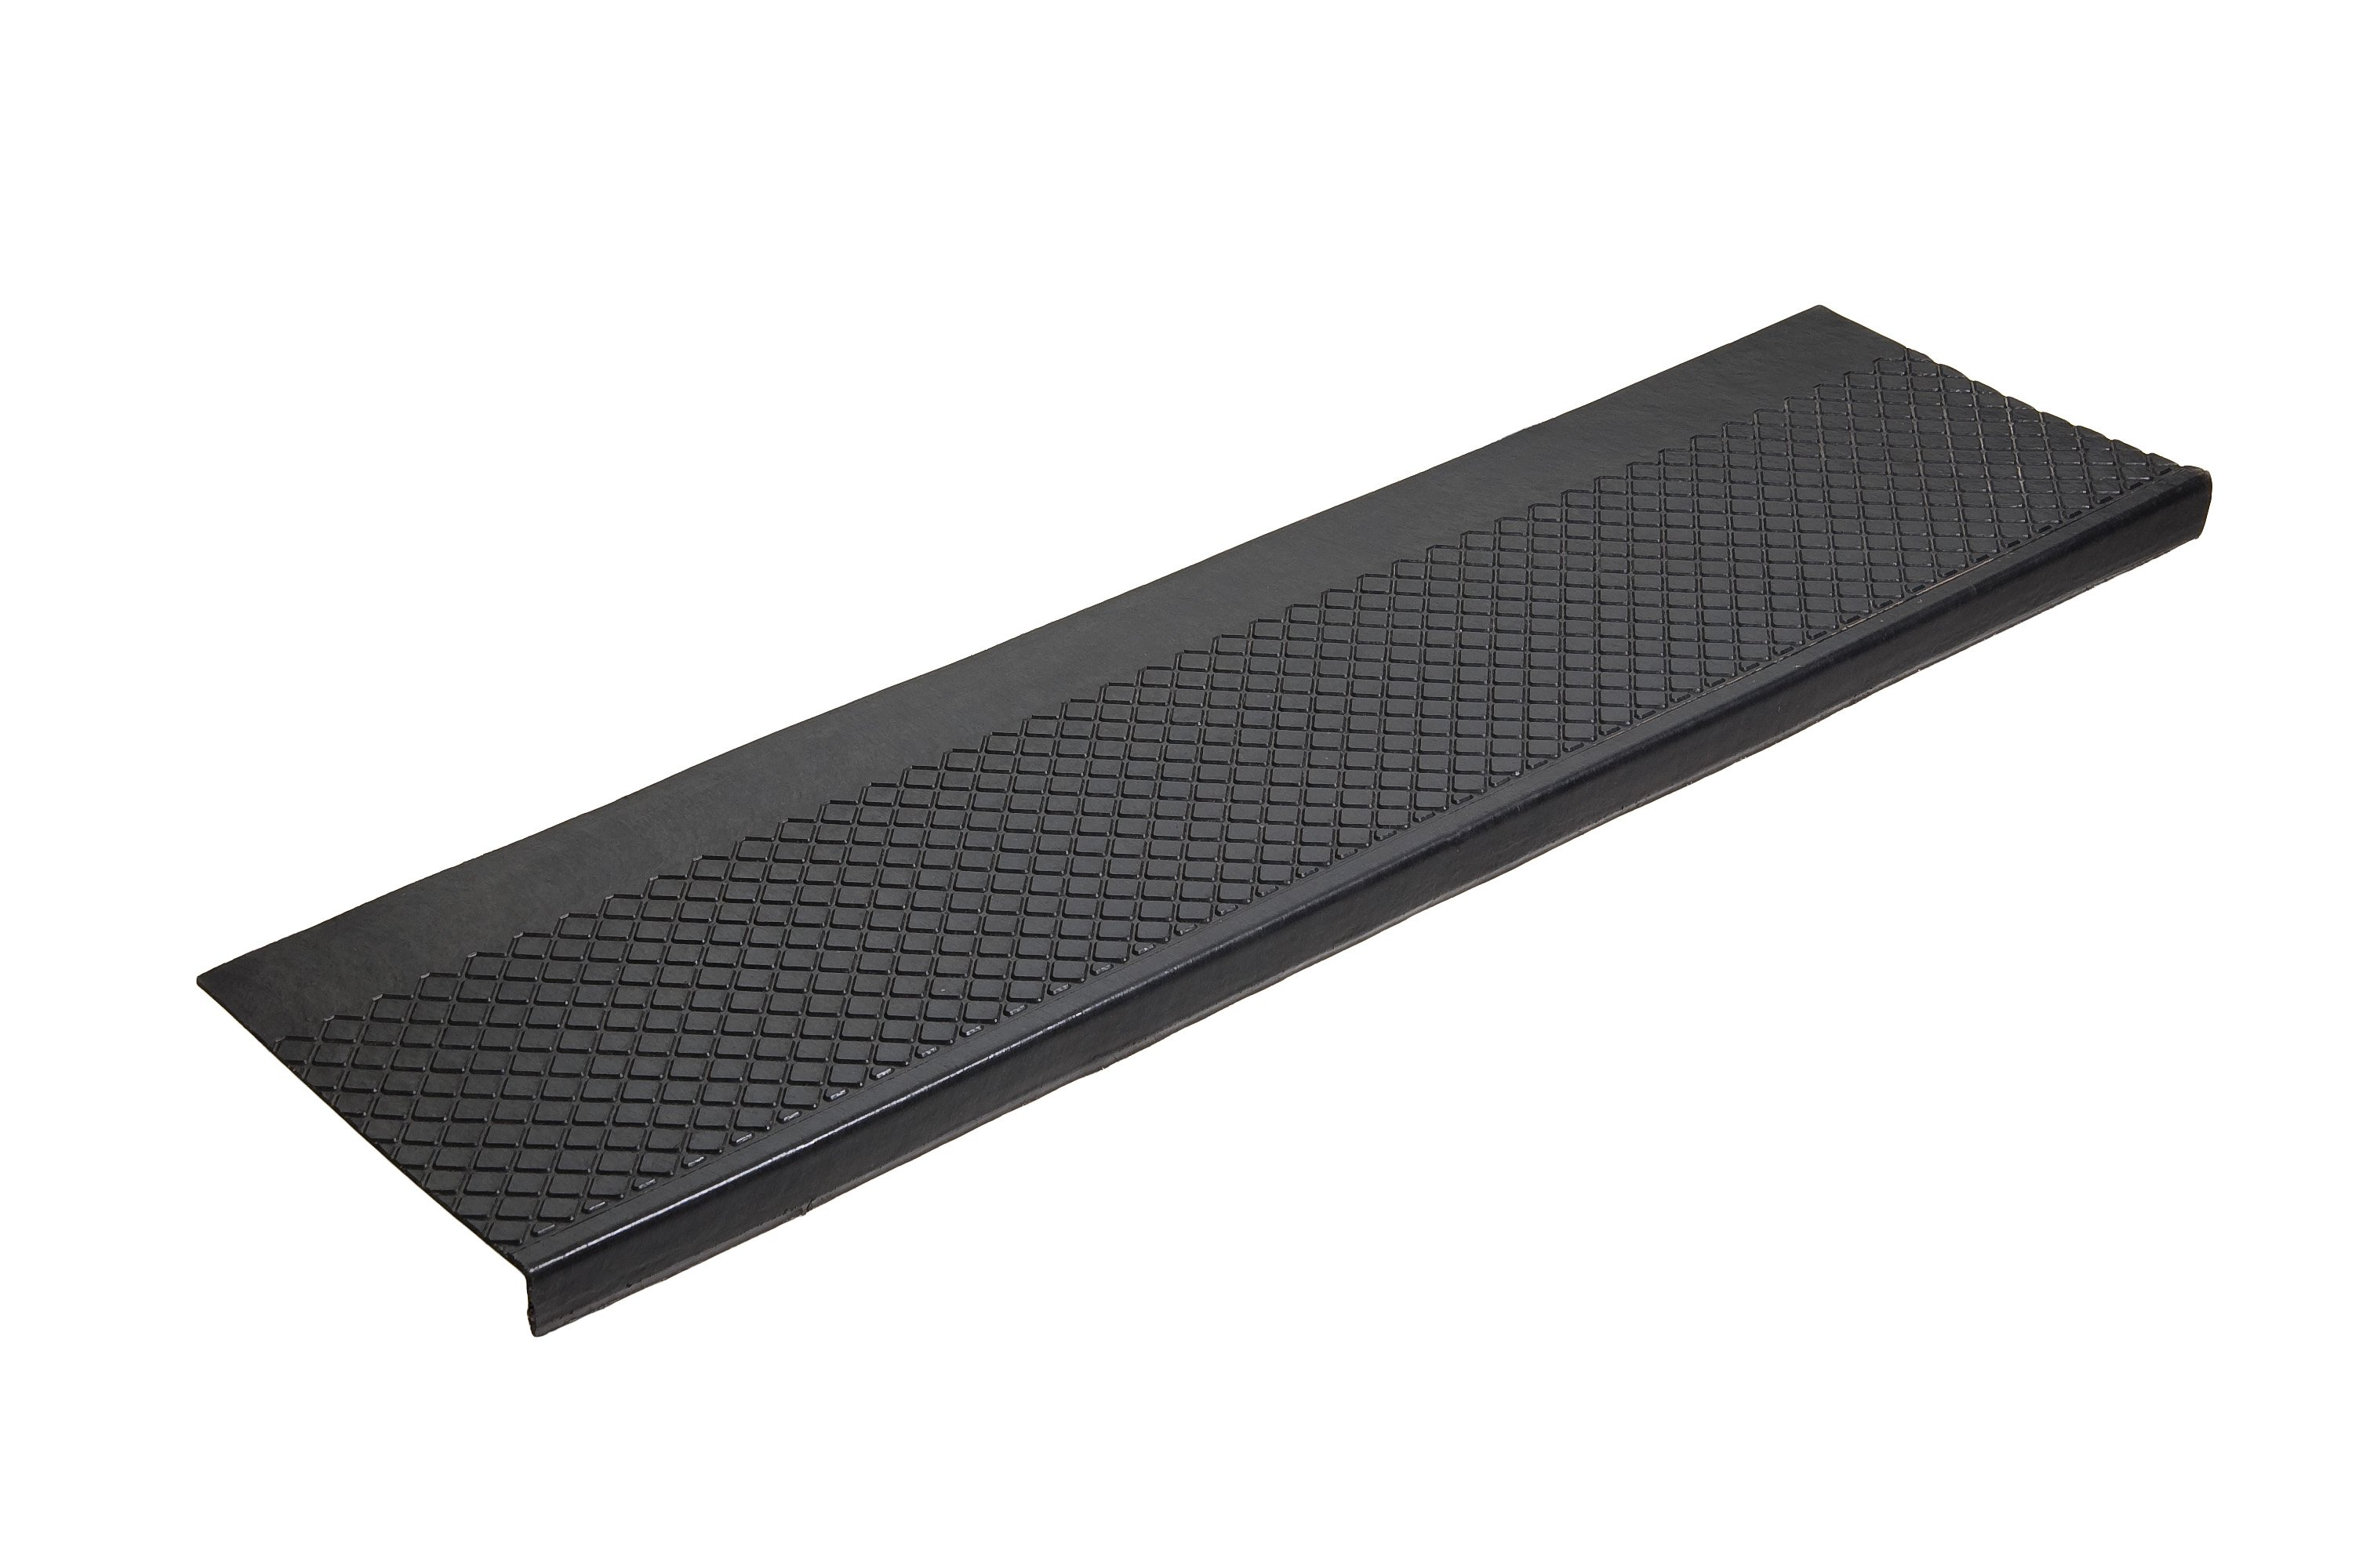 exterior stair treads and nosings. exterior grade recycled rubber stair treads has got to be the last word in heavy duty or extreme outdoor oriented treads. and nosings n